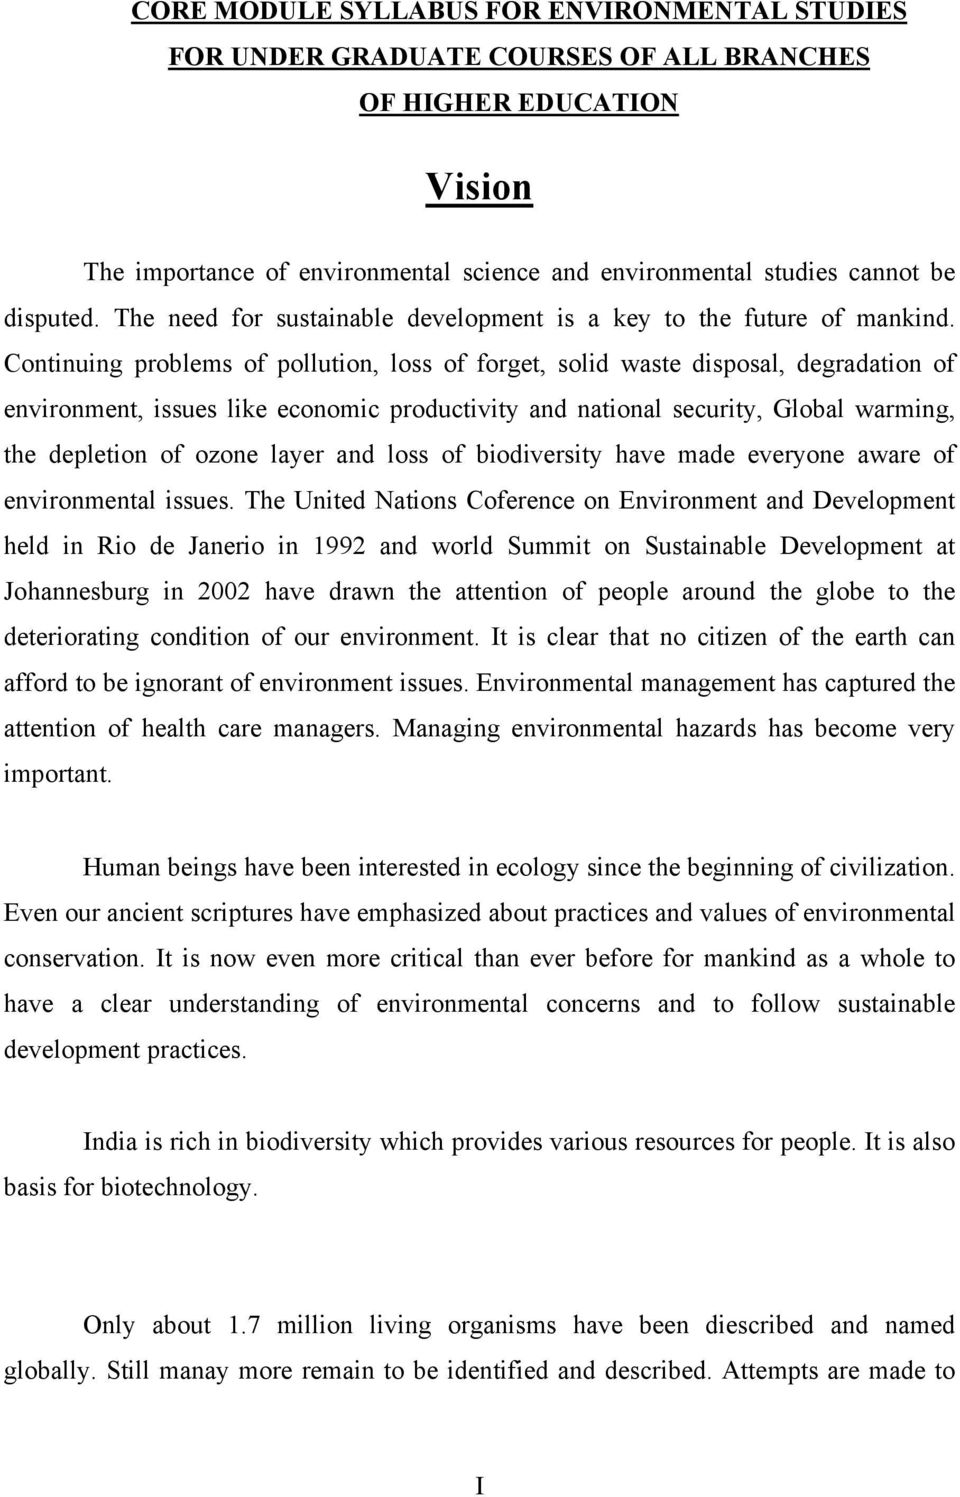 environmental studies for undergraduate courses erach bharucha pdf continuing problems of pollution loss of forget solid waste disposal degradation of environment